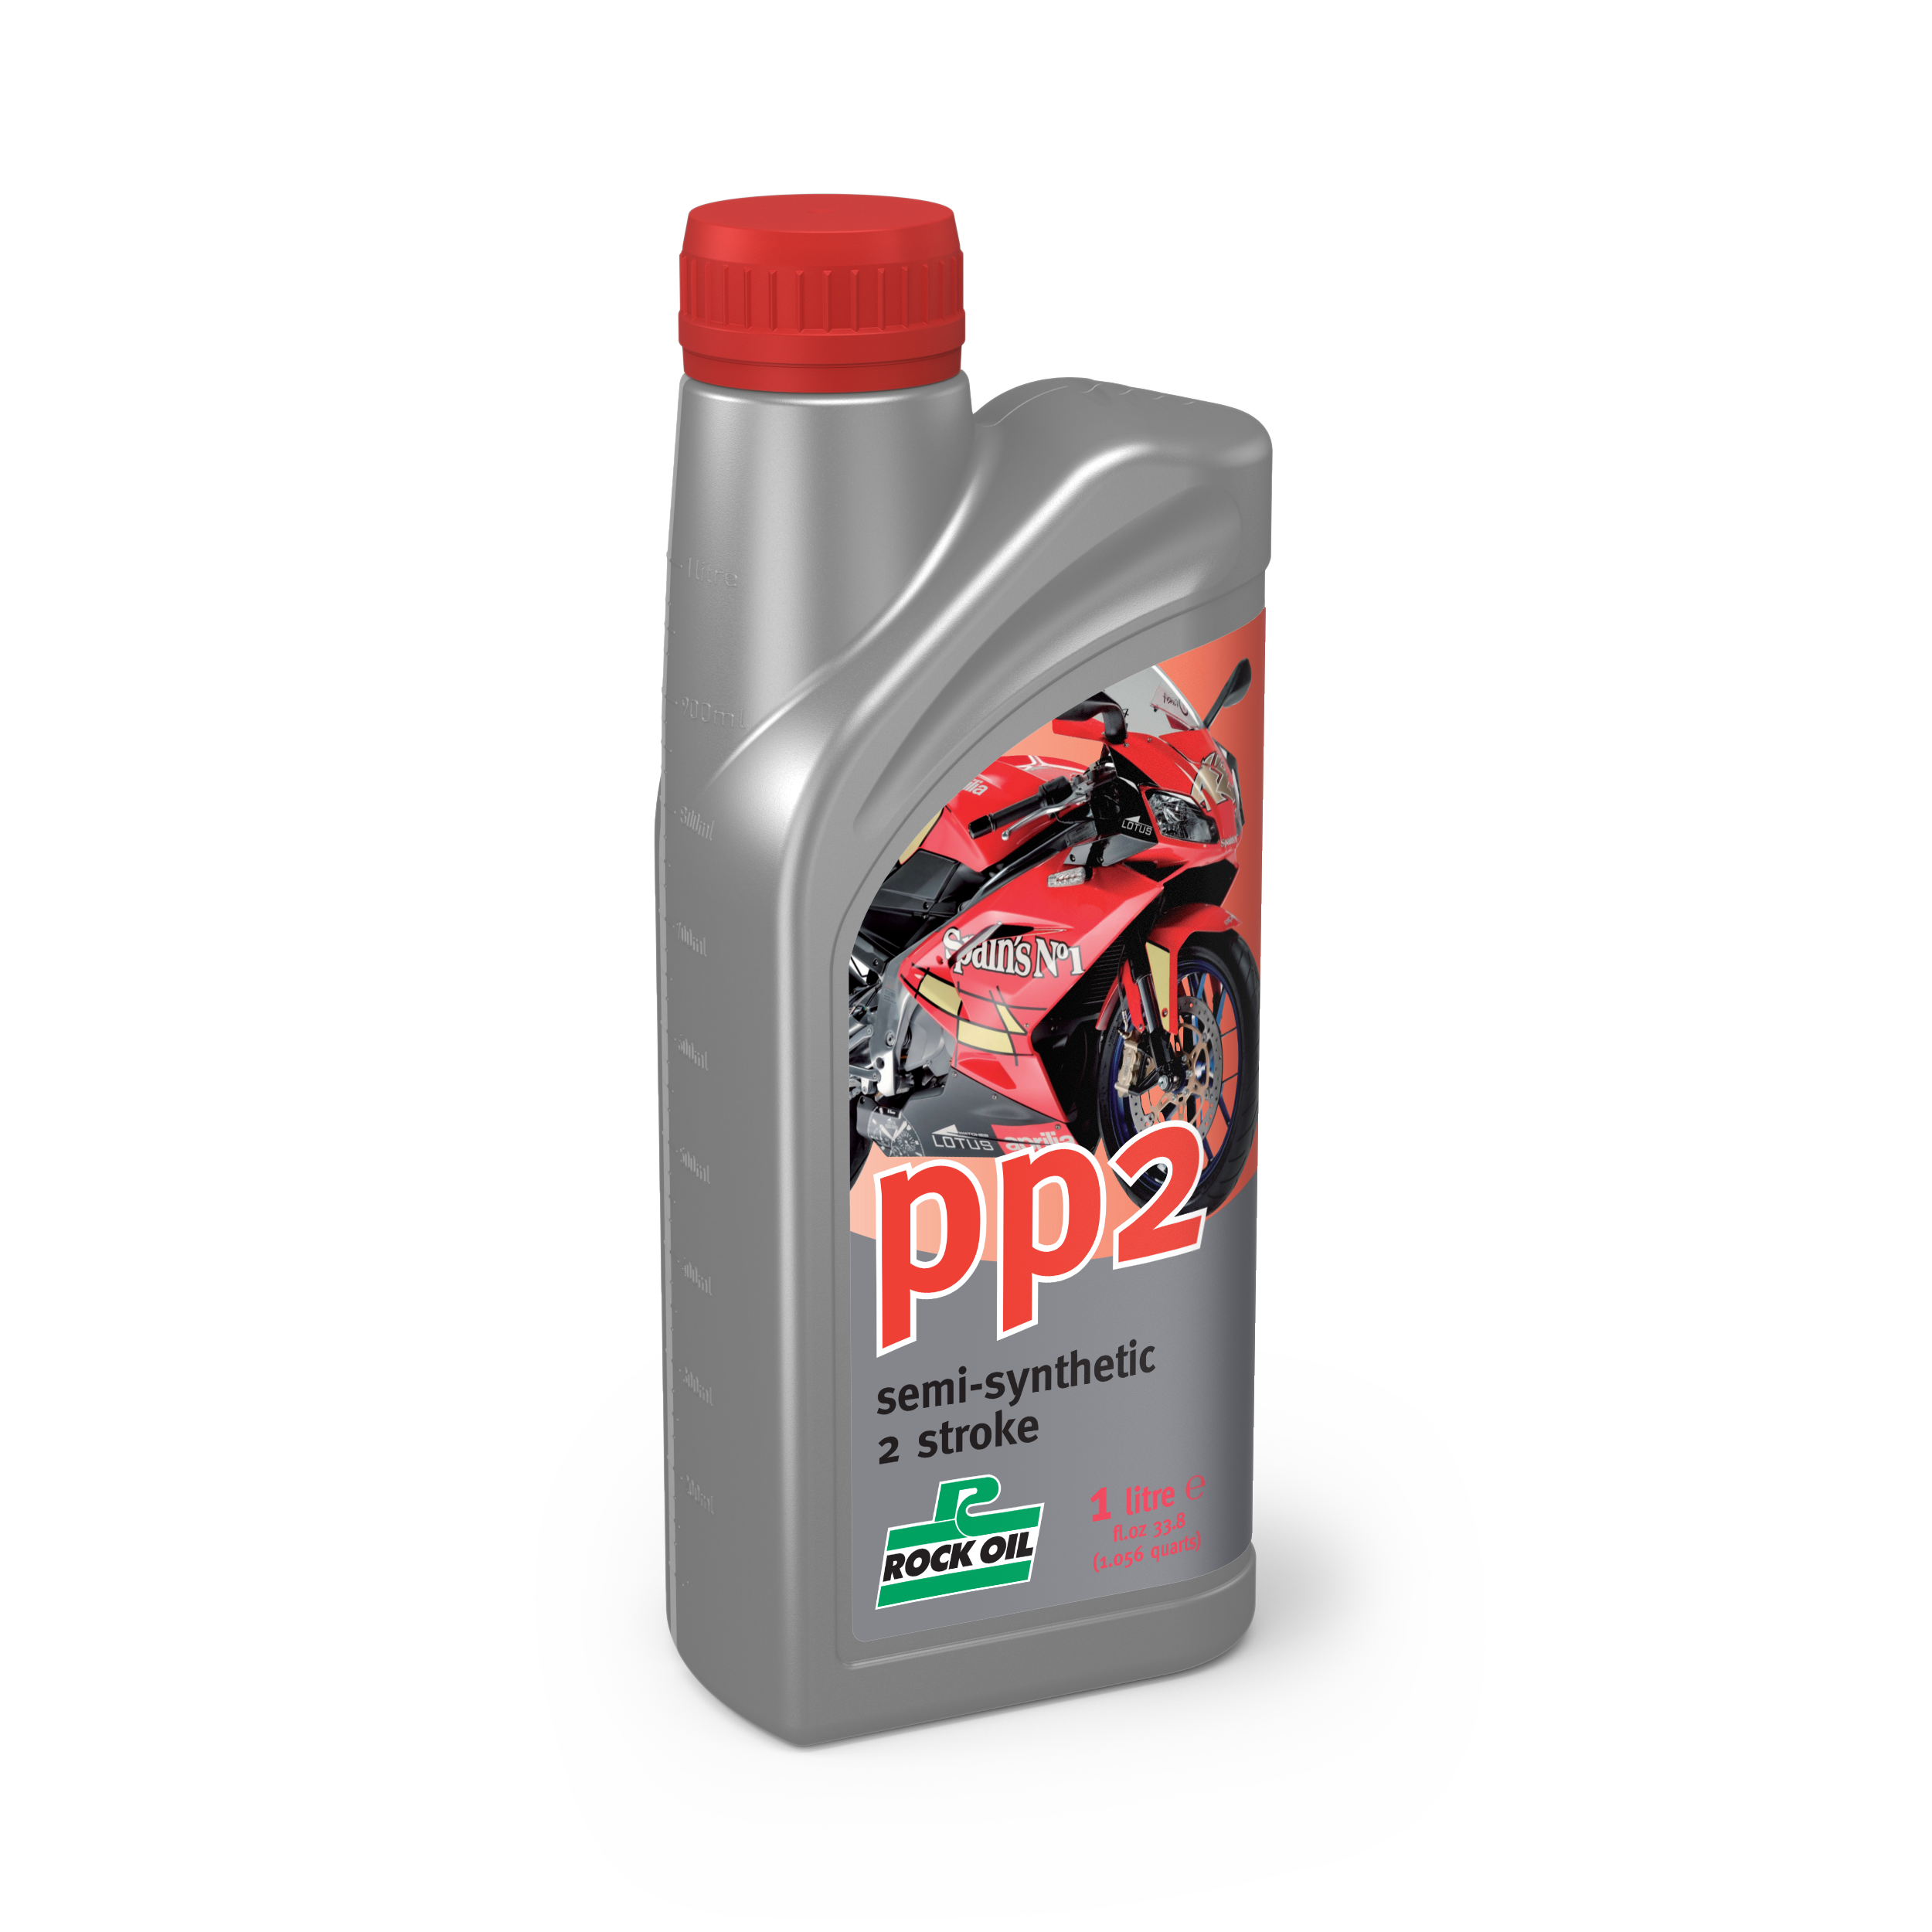 Rock Oil pp2 1 l.